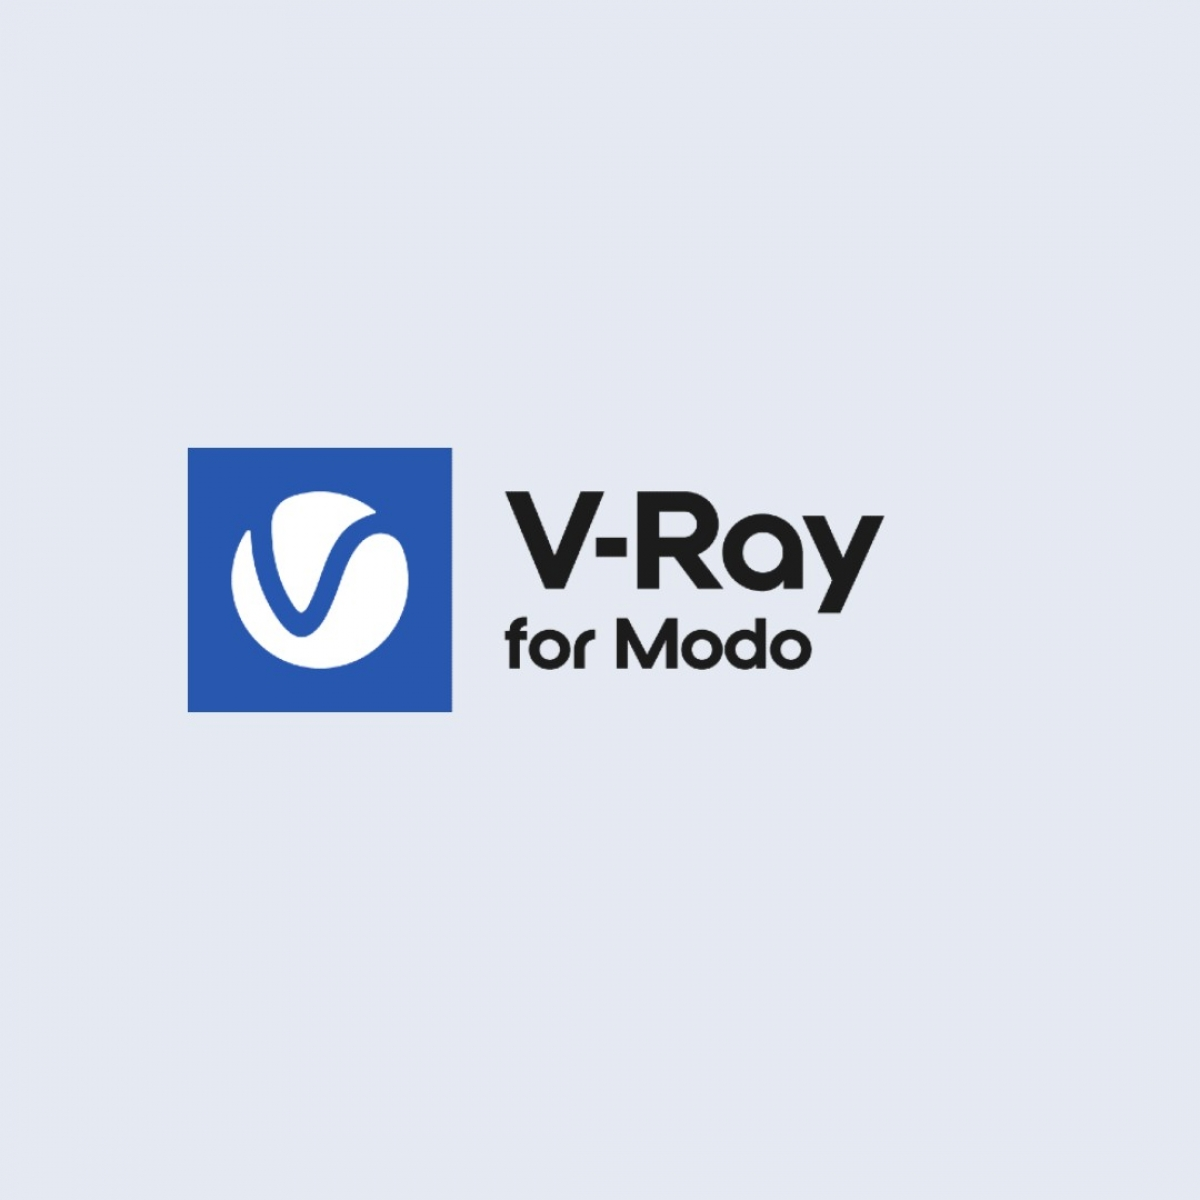 V-Ray for Modo